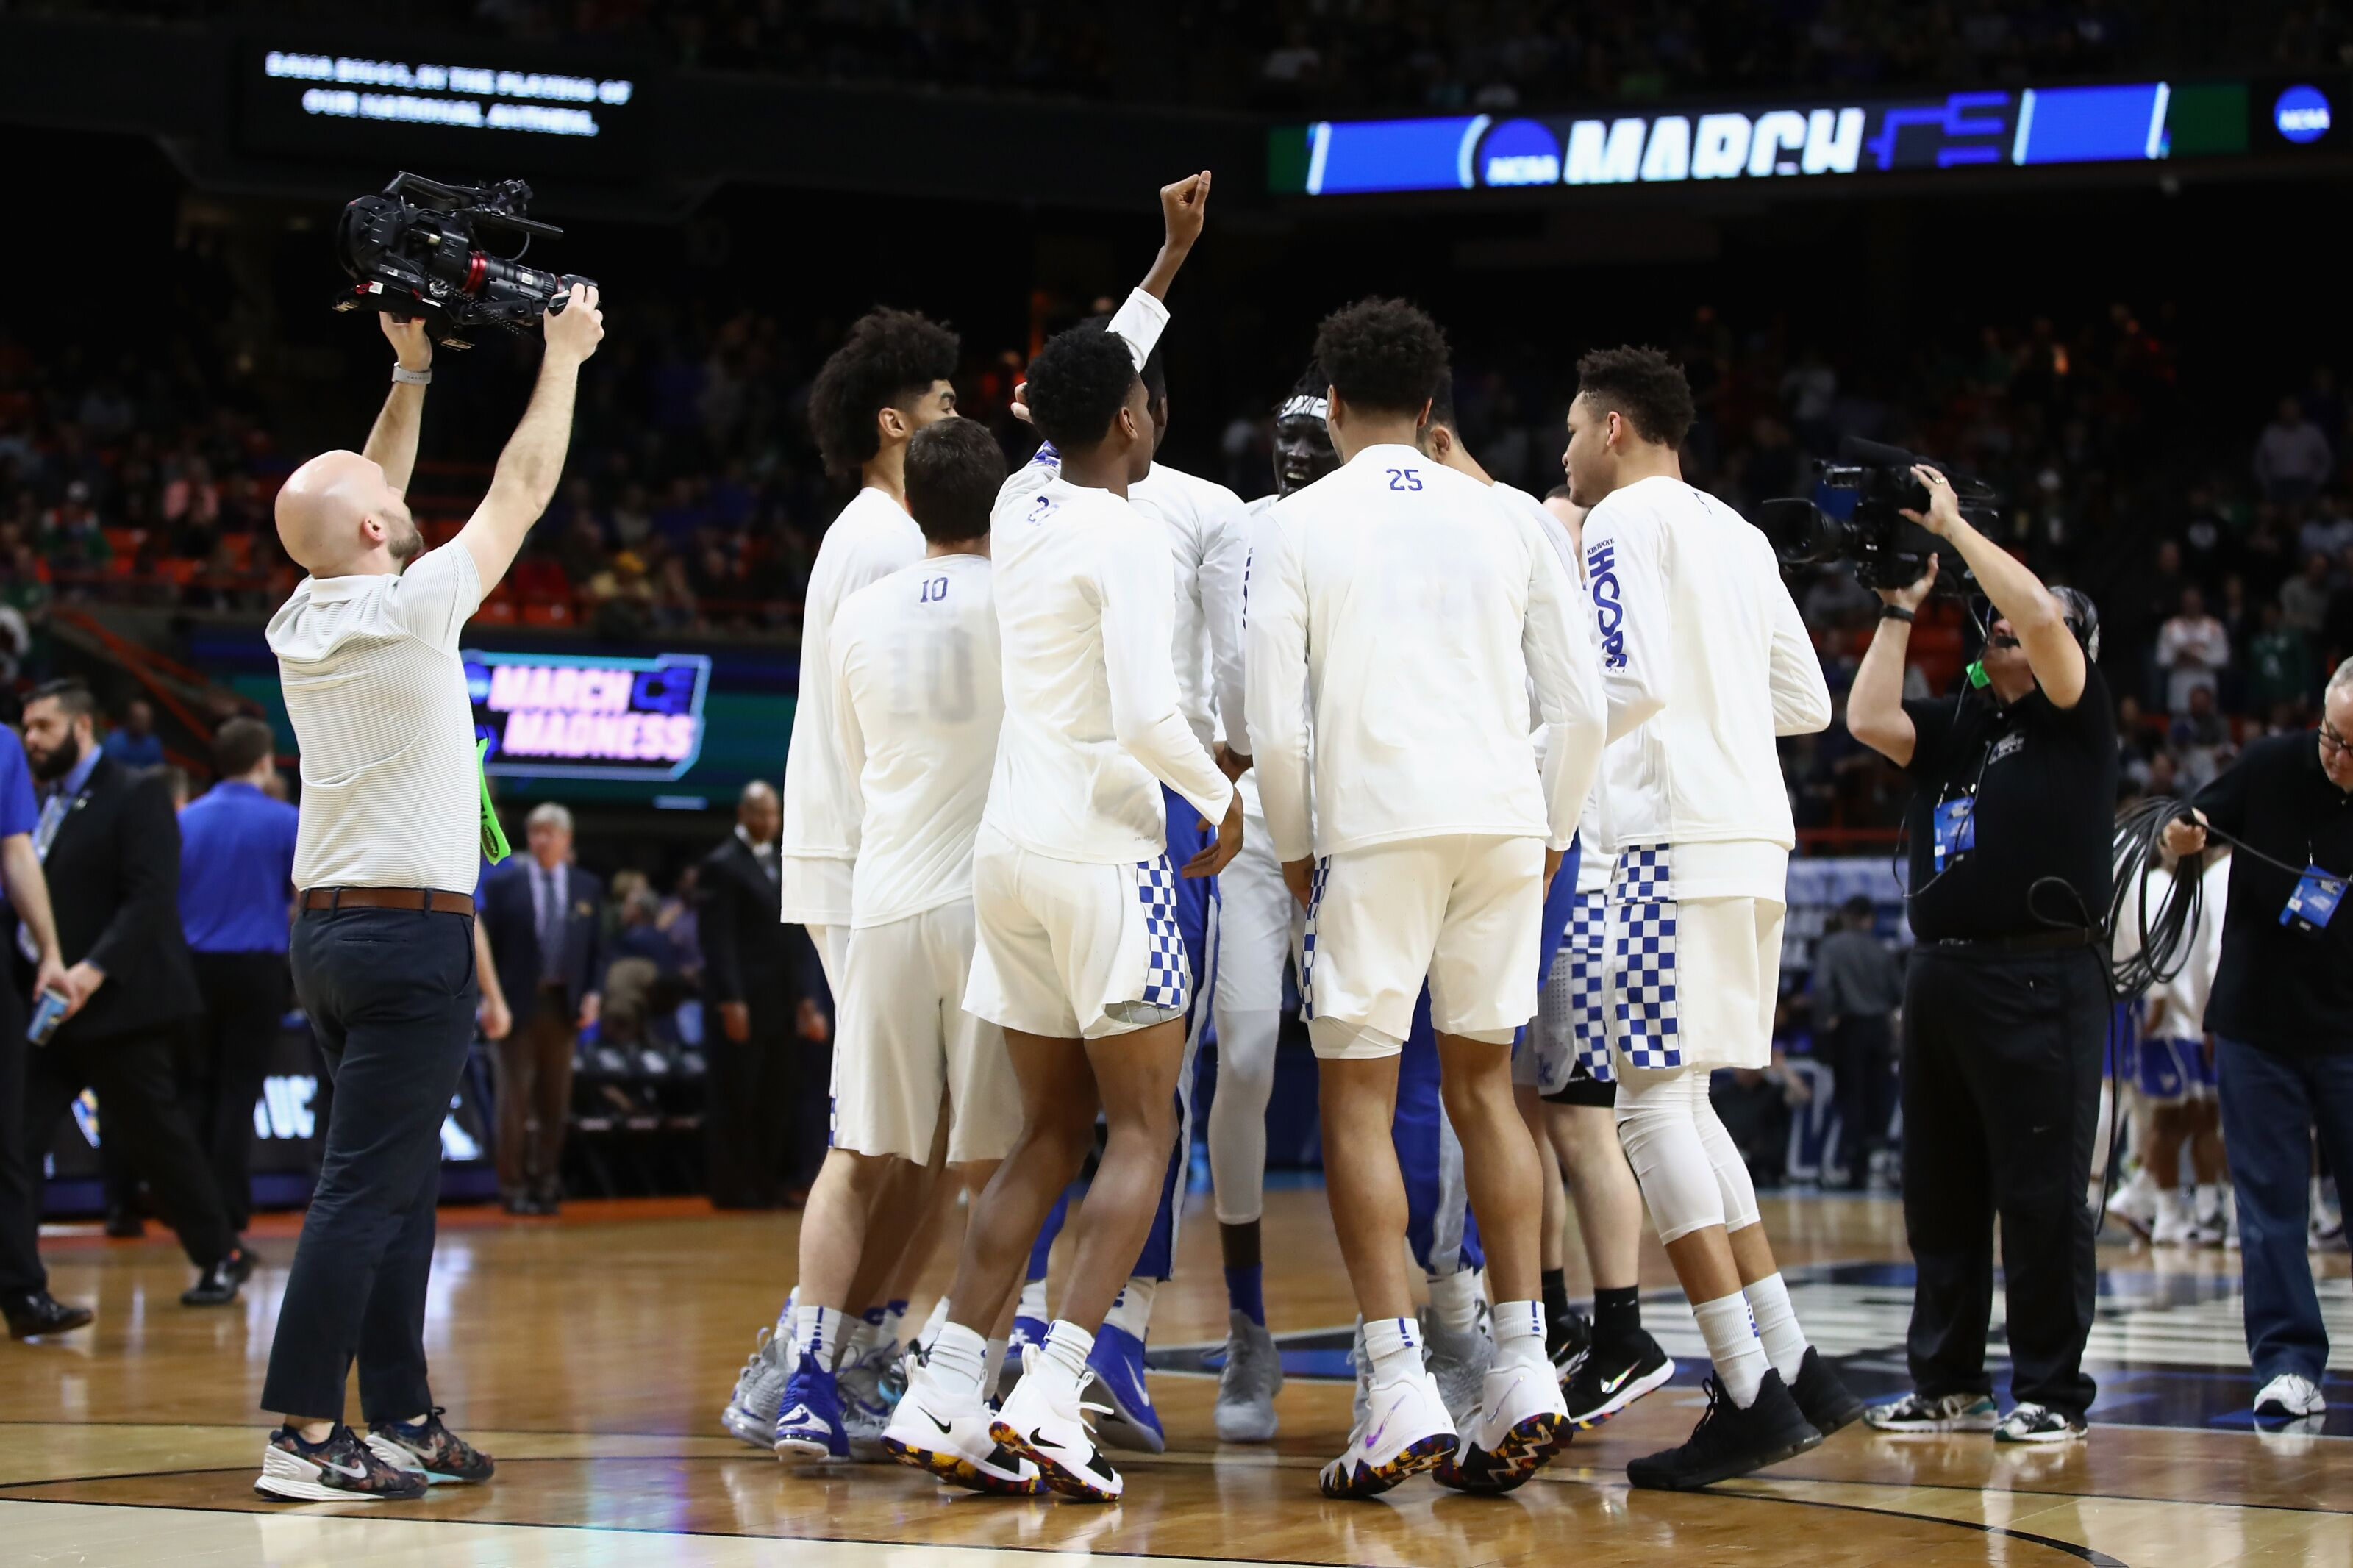 2013 Recruits Uk Basketball And Football Recruiting News: Kentucky Basketball: Top 2019 Recruiting Targets For The